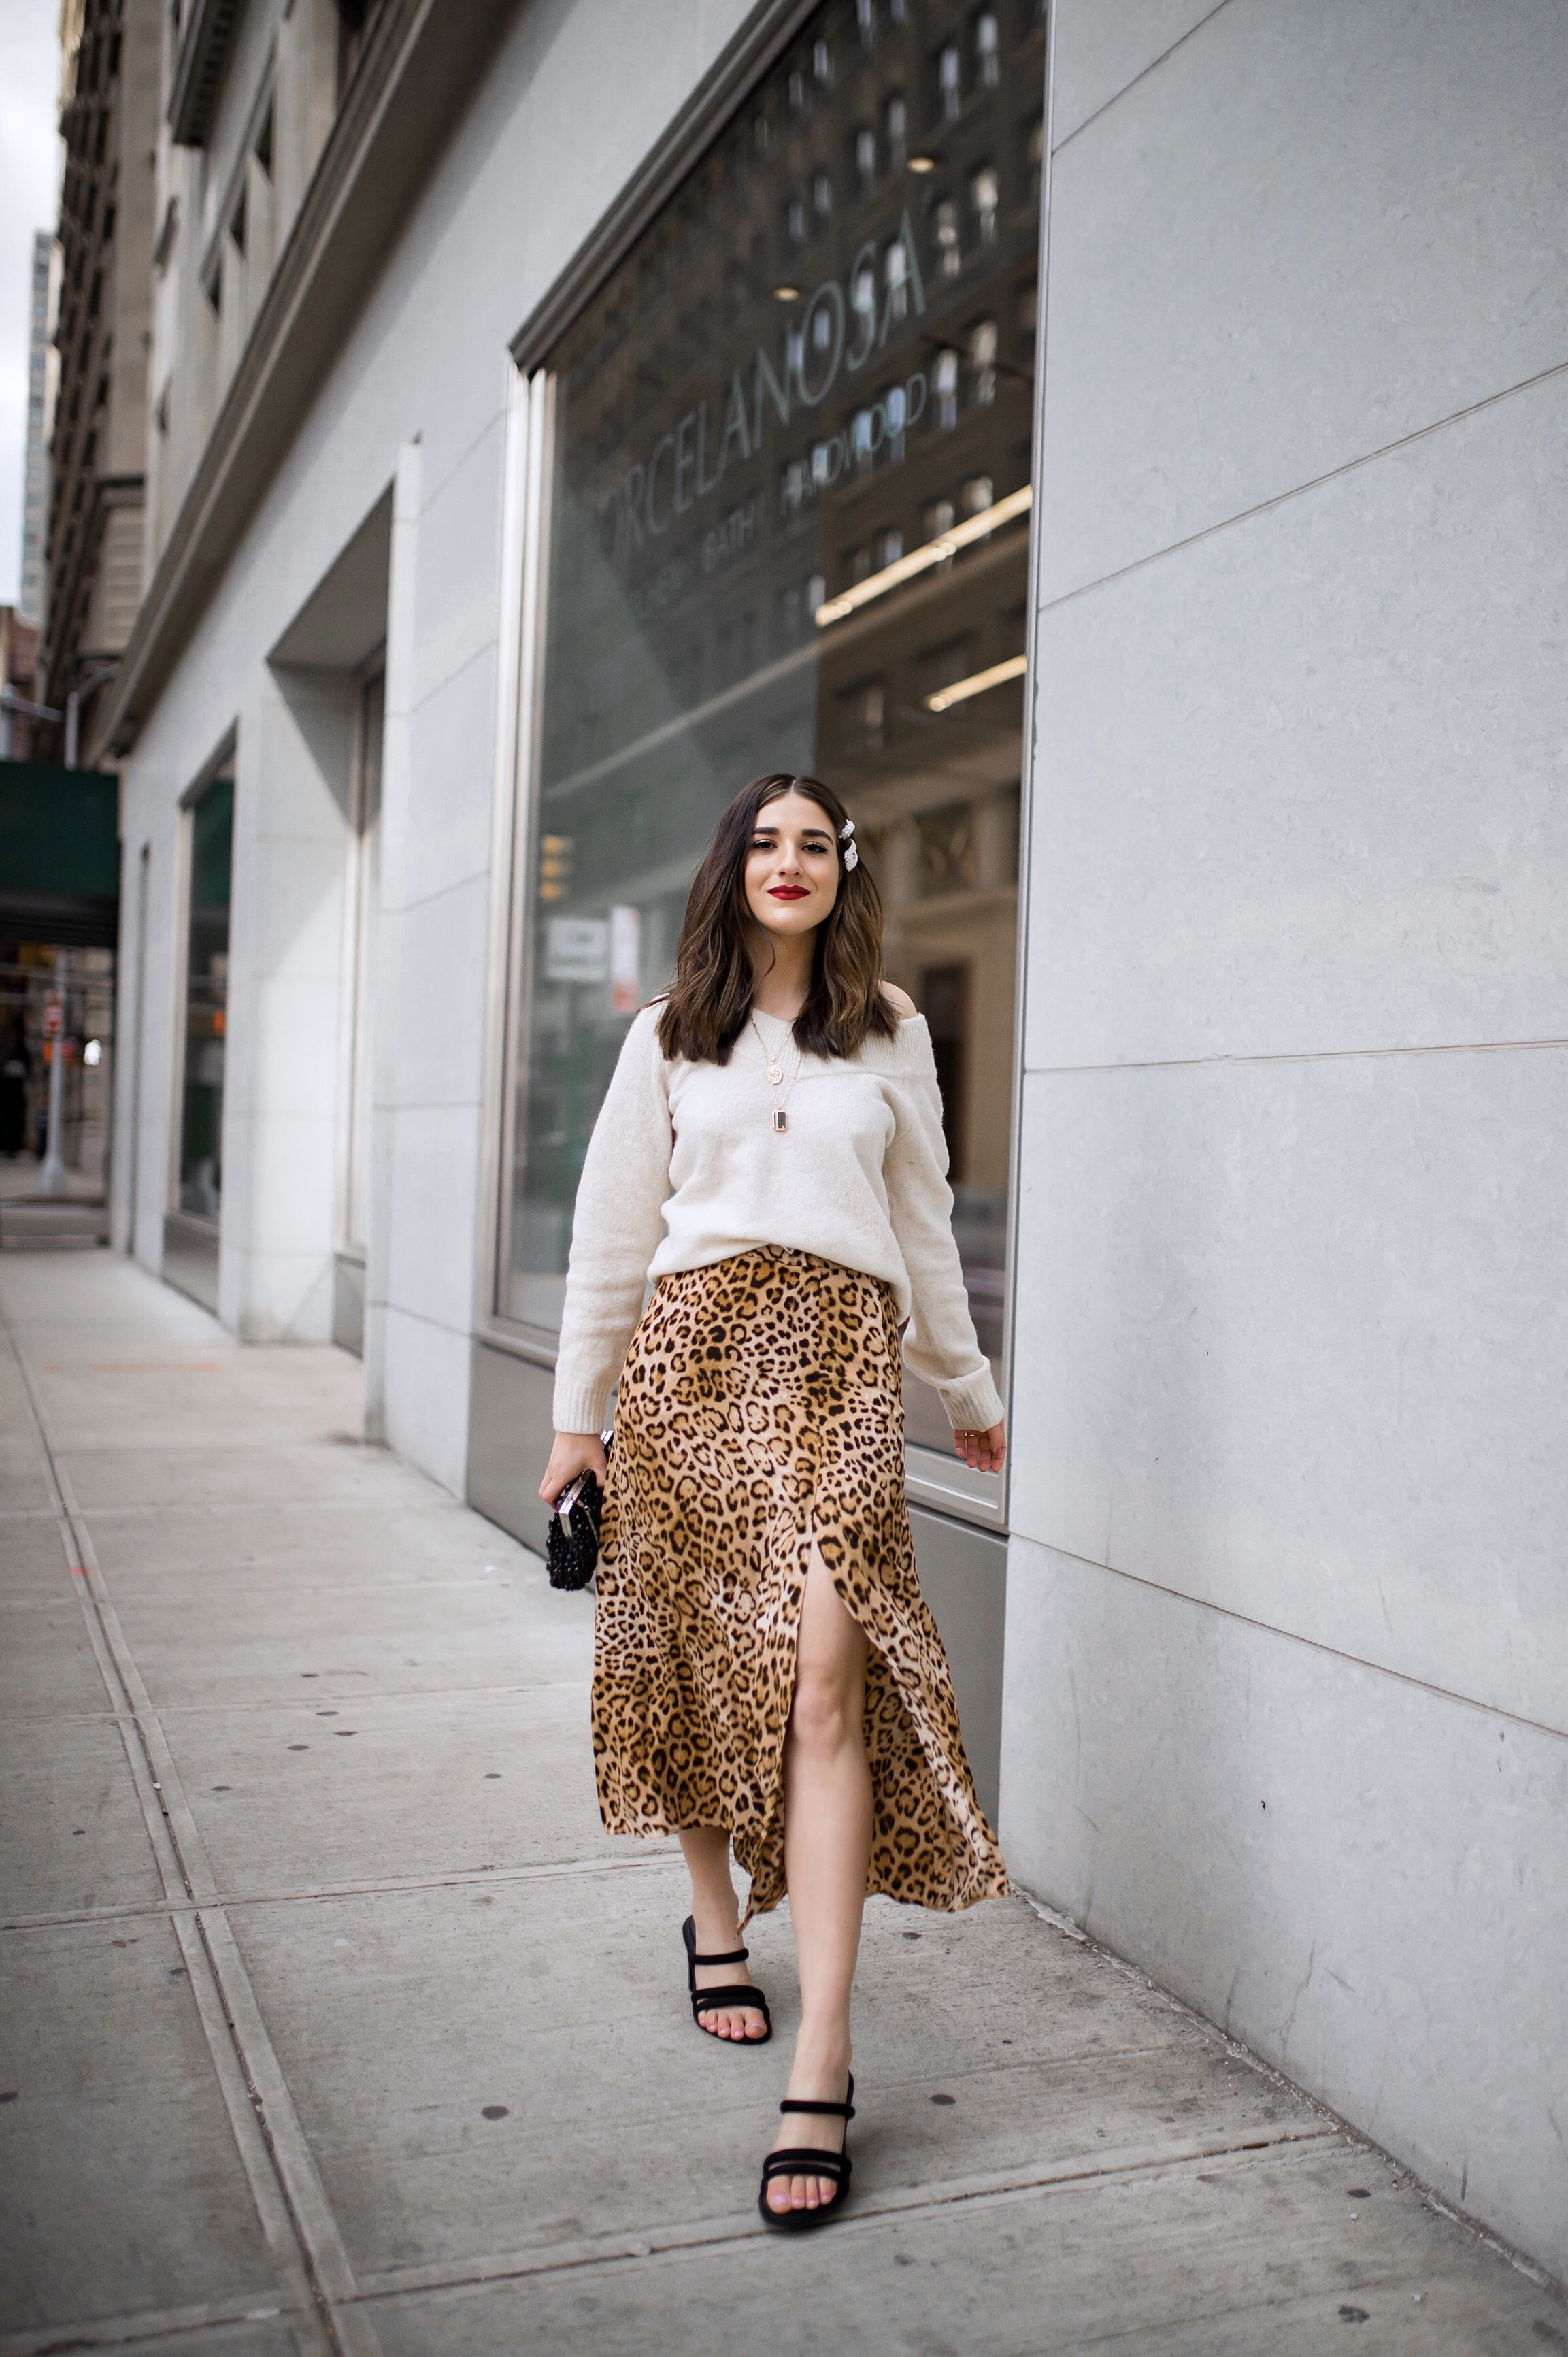 The Instagram Likes Debate Leopard Midi Skirt Beige Sweater Esther Santer Fashion Blog NYC Street Style Blogger Outfit OOTD Trendy Shopping Girl What Wear H&M Zara Pearl Barrettes Hair Clips Accessories Sandals Gold Layered Necklaces Beaded Clutch Bag.jpg